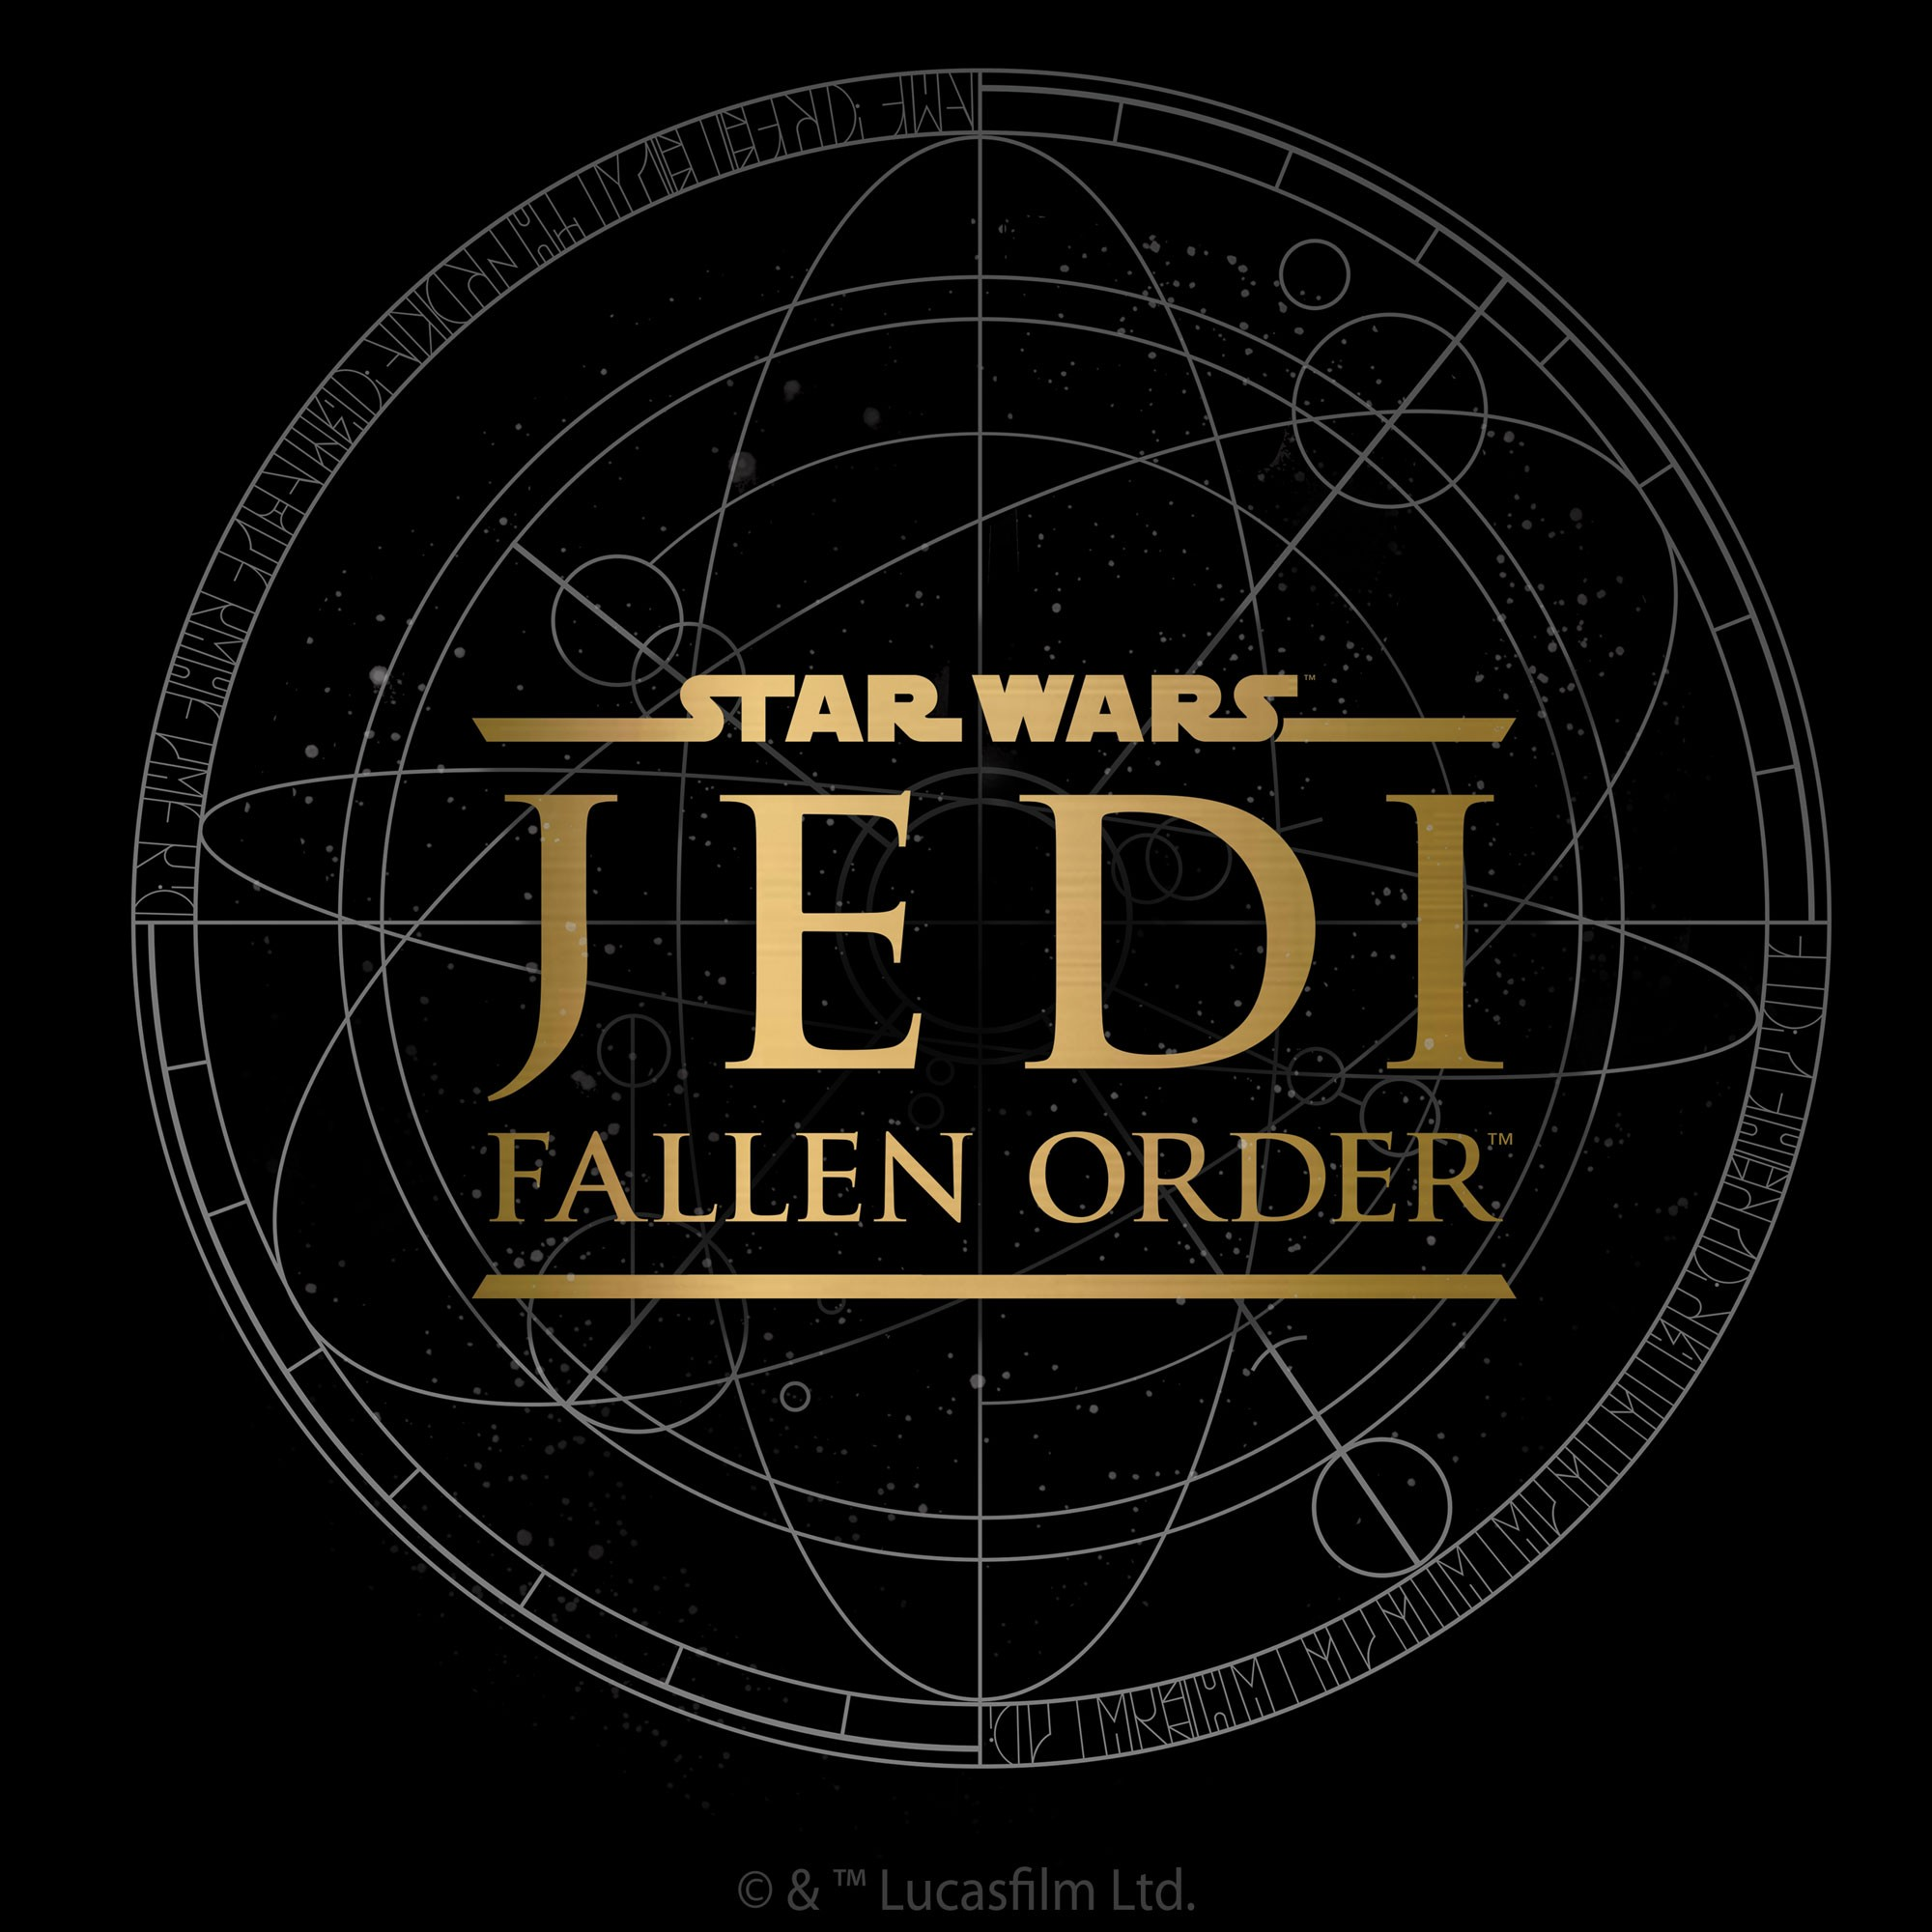 Star Wars Tech Decal Set 1 with a Jedi Fallen Order Design, Image 6